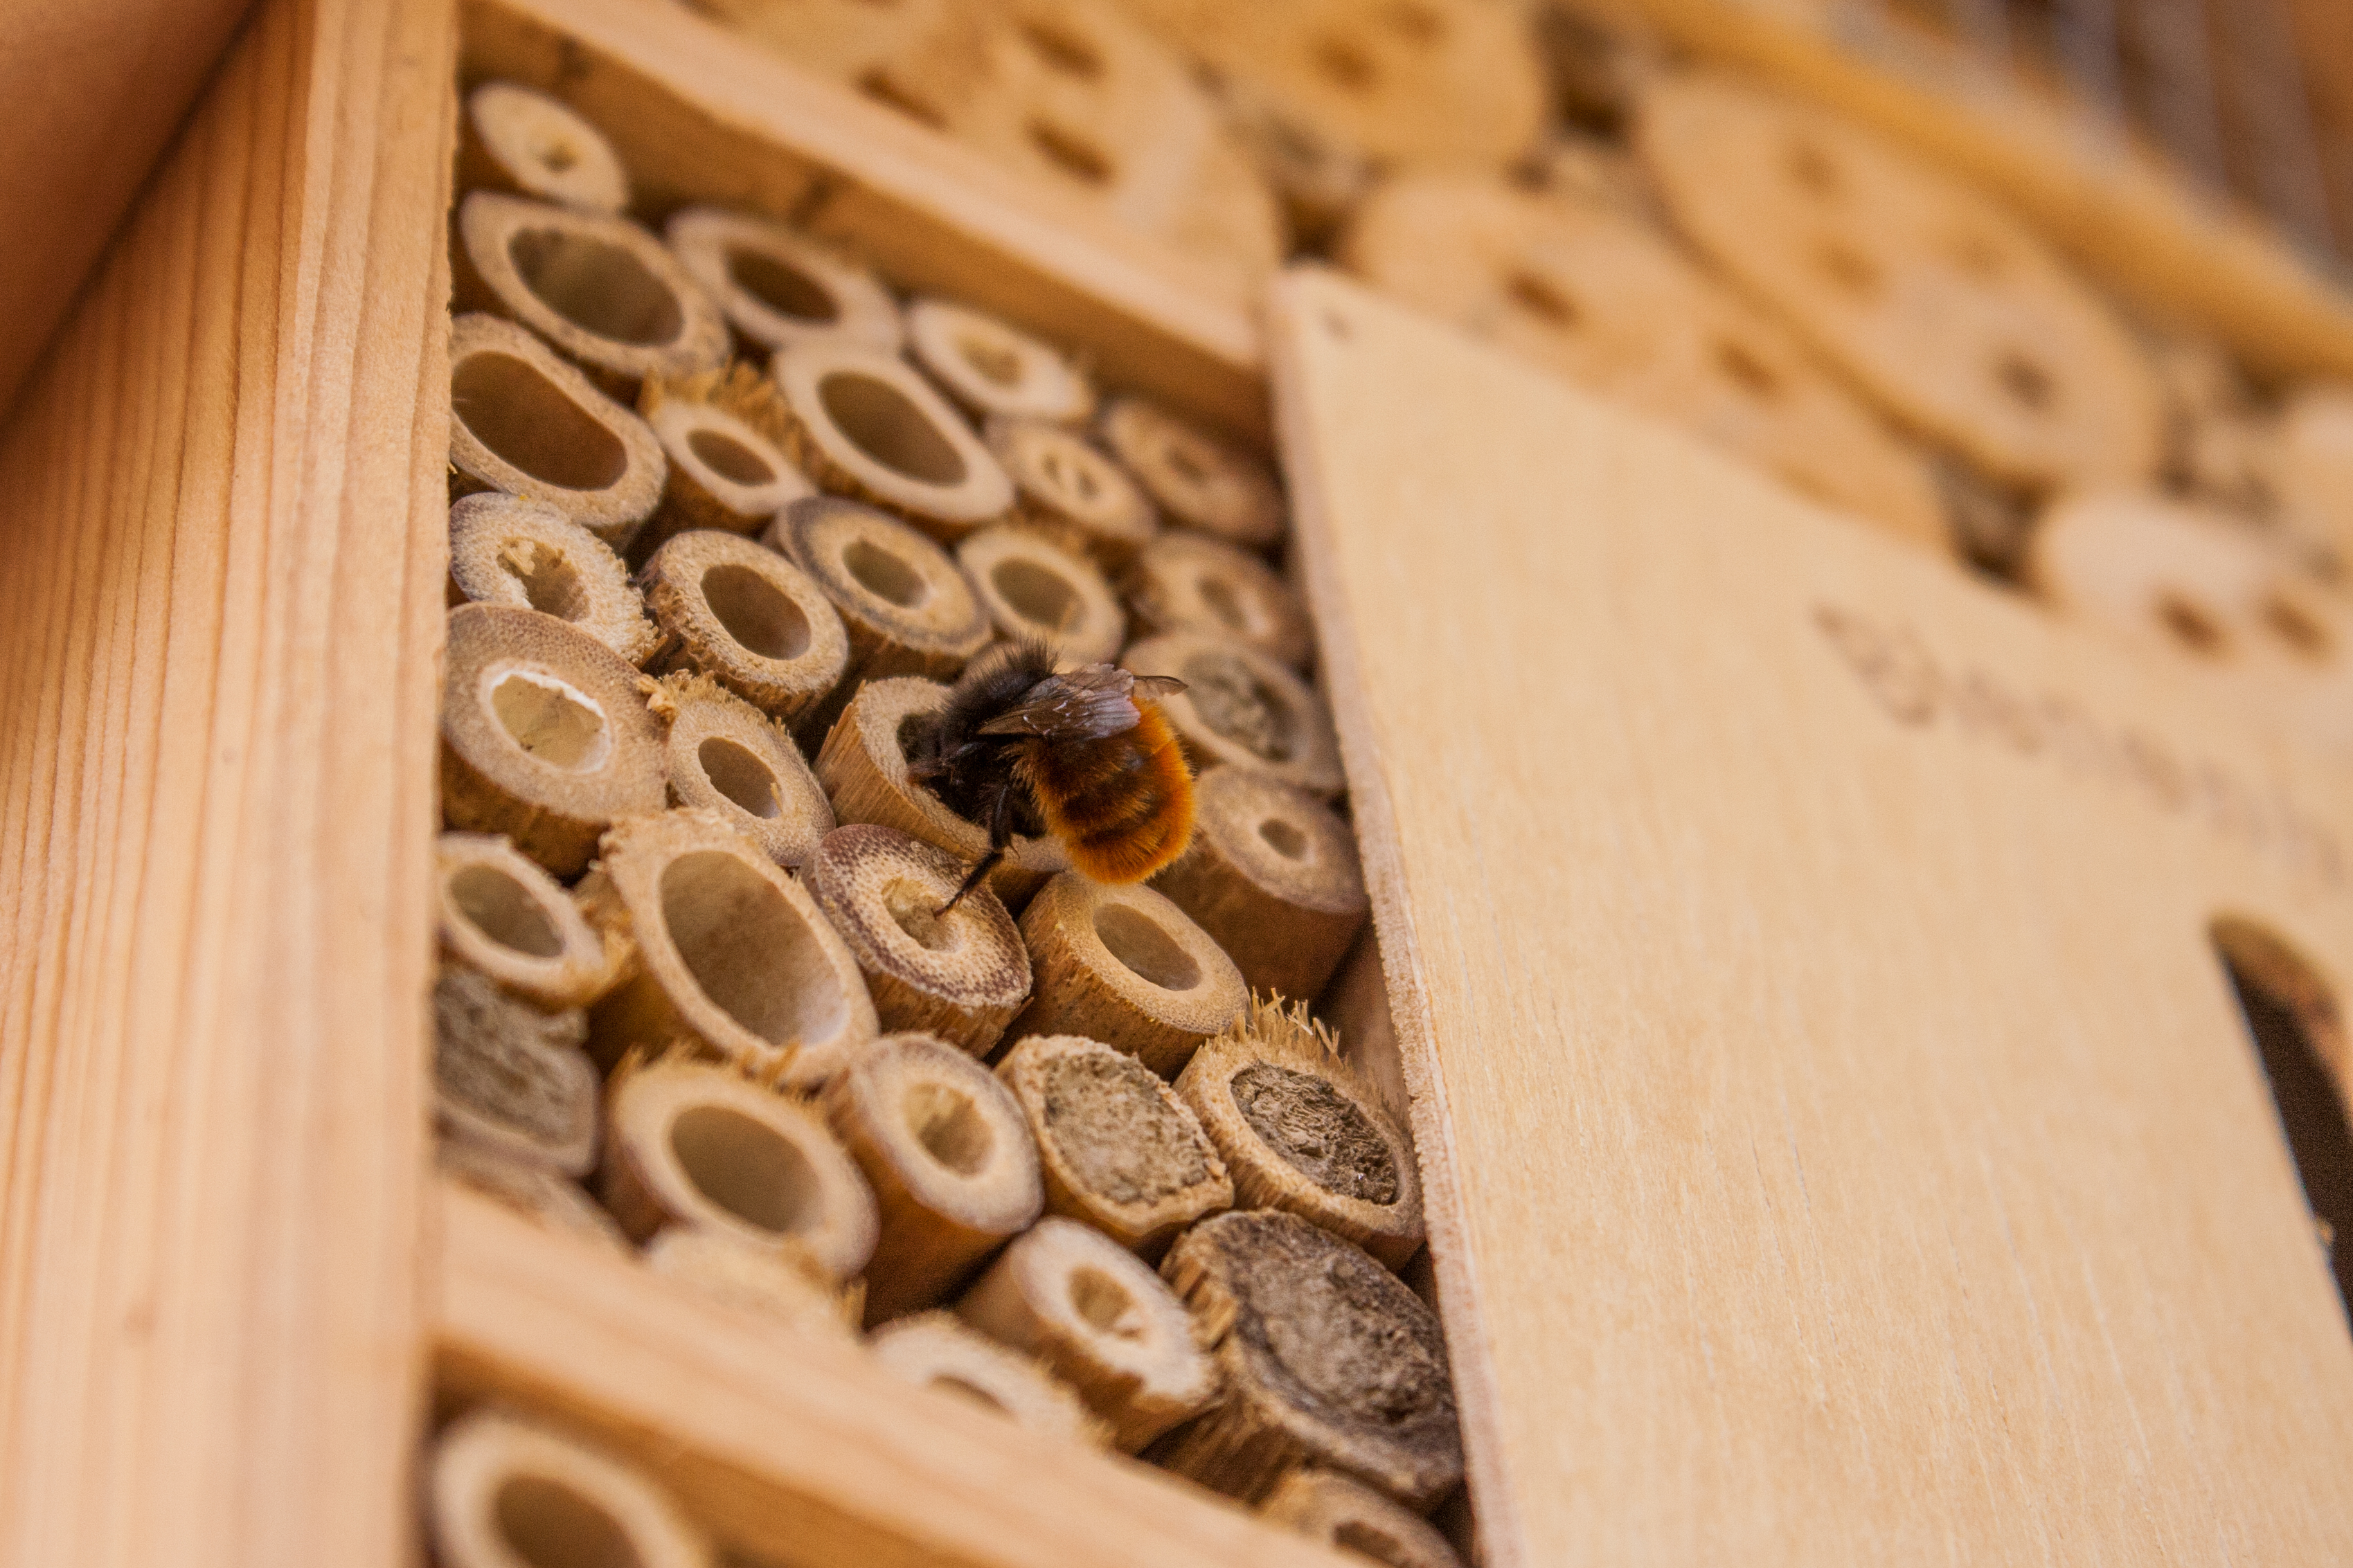 Meet the Mason Bee: A Solution to Declining Honeybee Populations